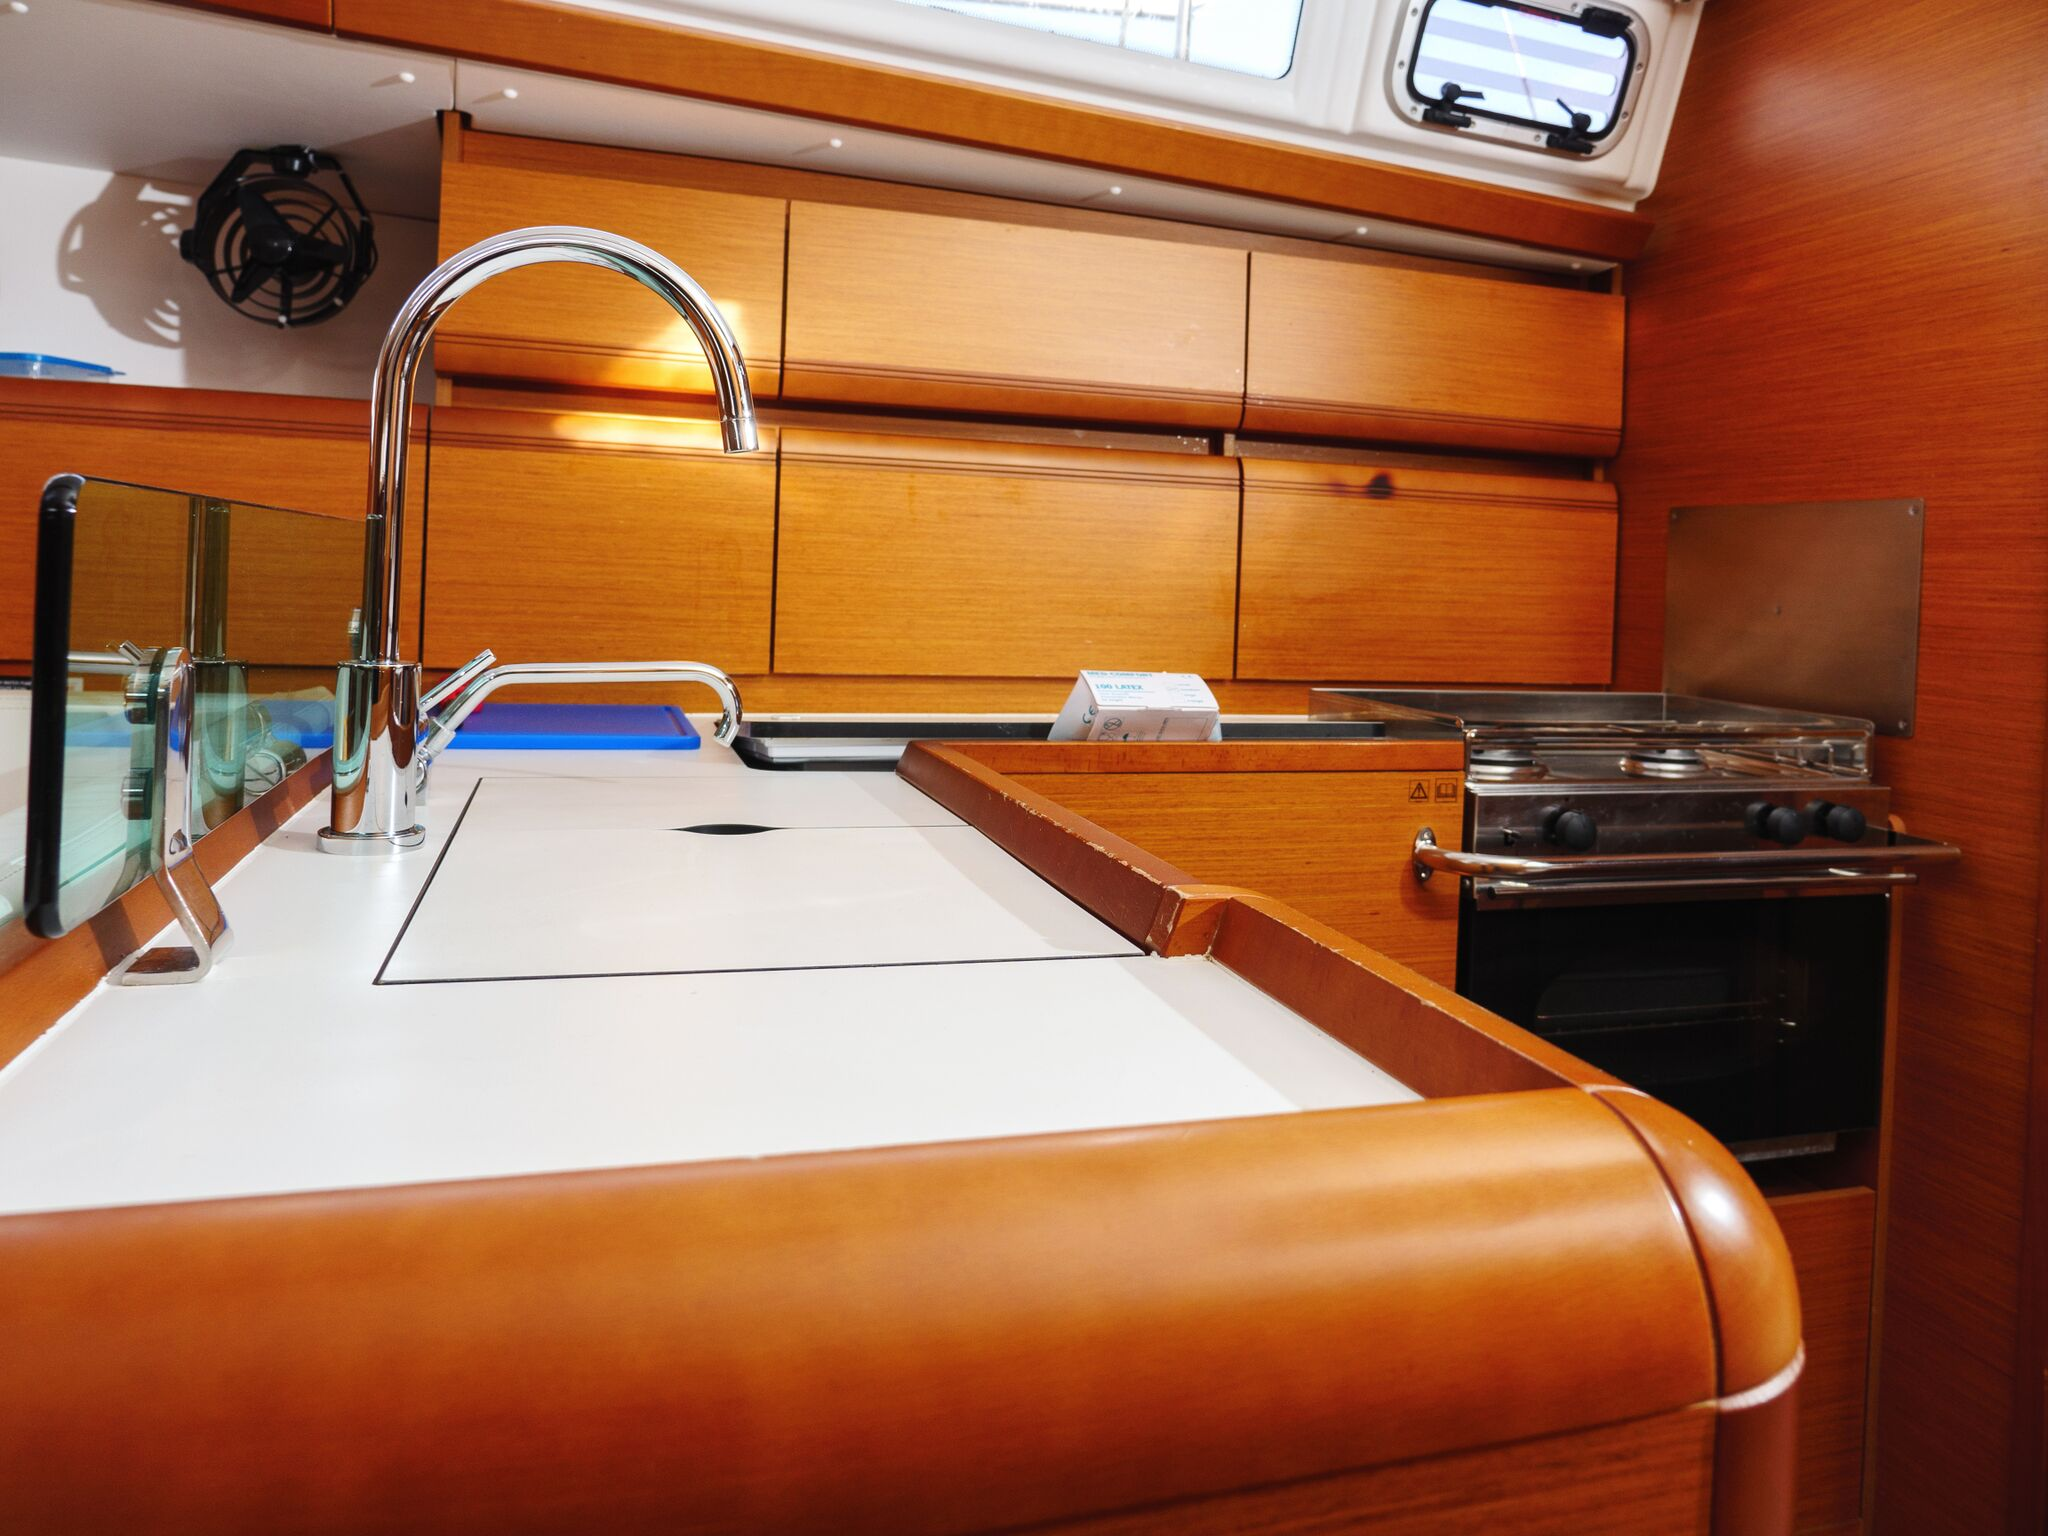 Sun Odyssey 449 (Port Royal) Interior - kitchen (photo taken 2019) - 2